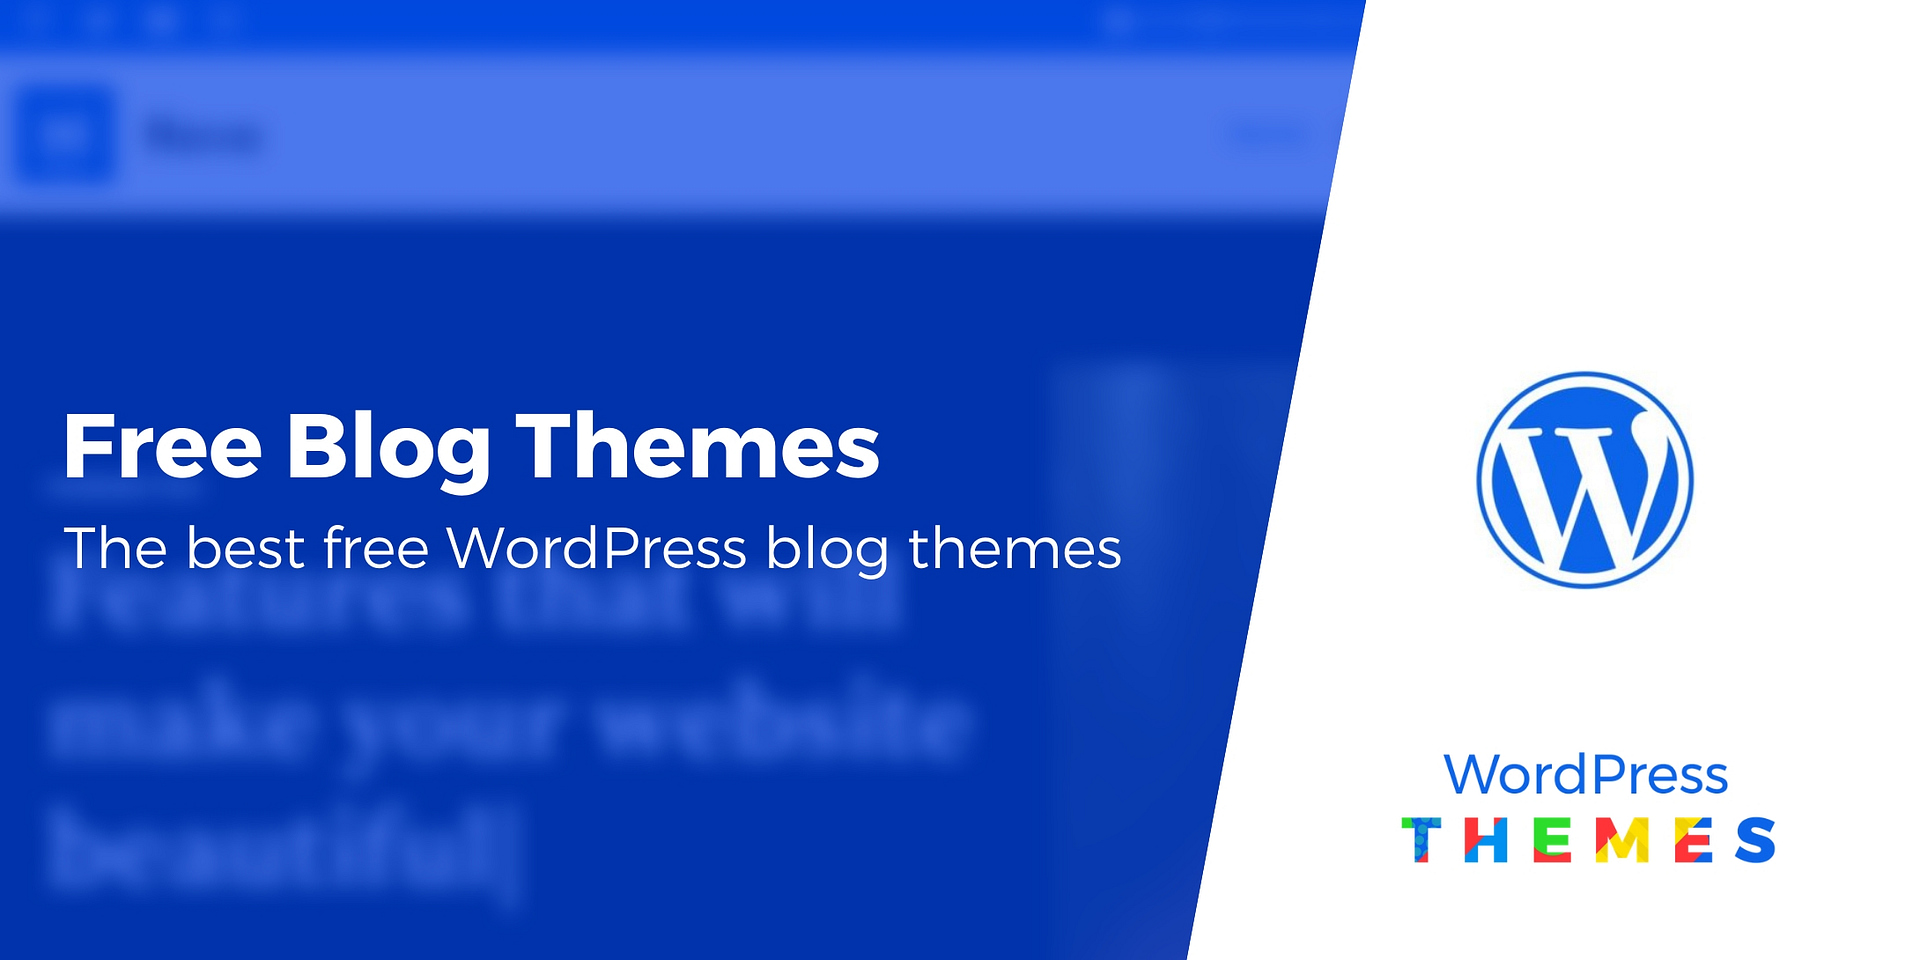 Best Free Wordpress Themes 2020.10 Best Free Wordpress Blog Themes For 2019 2020 Curated List